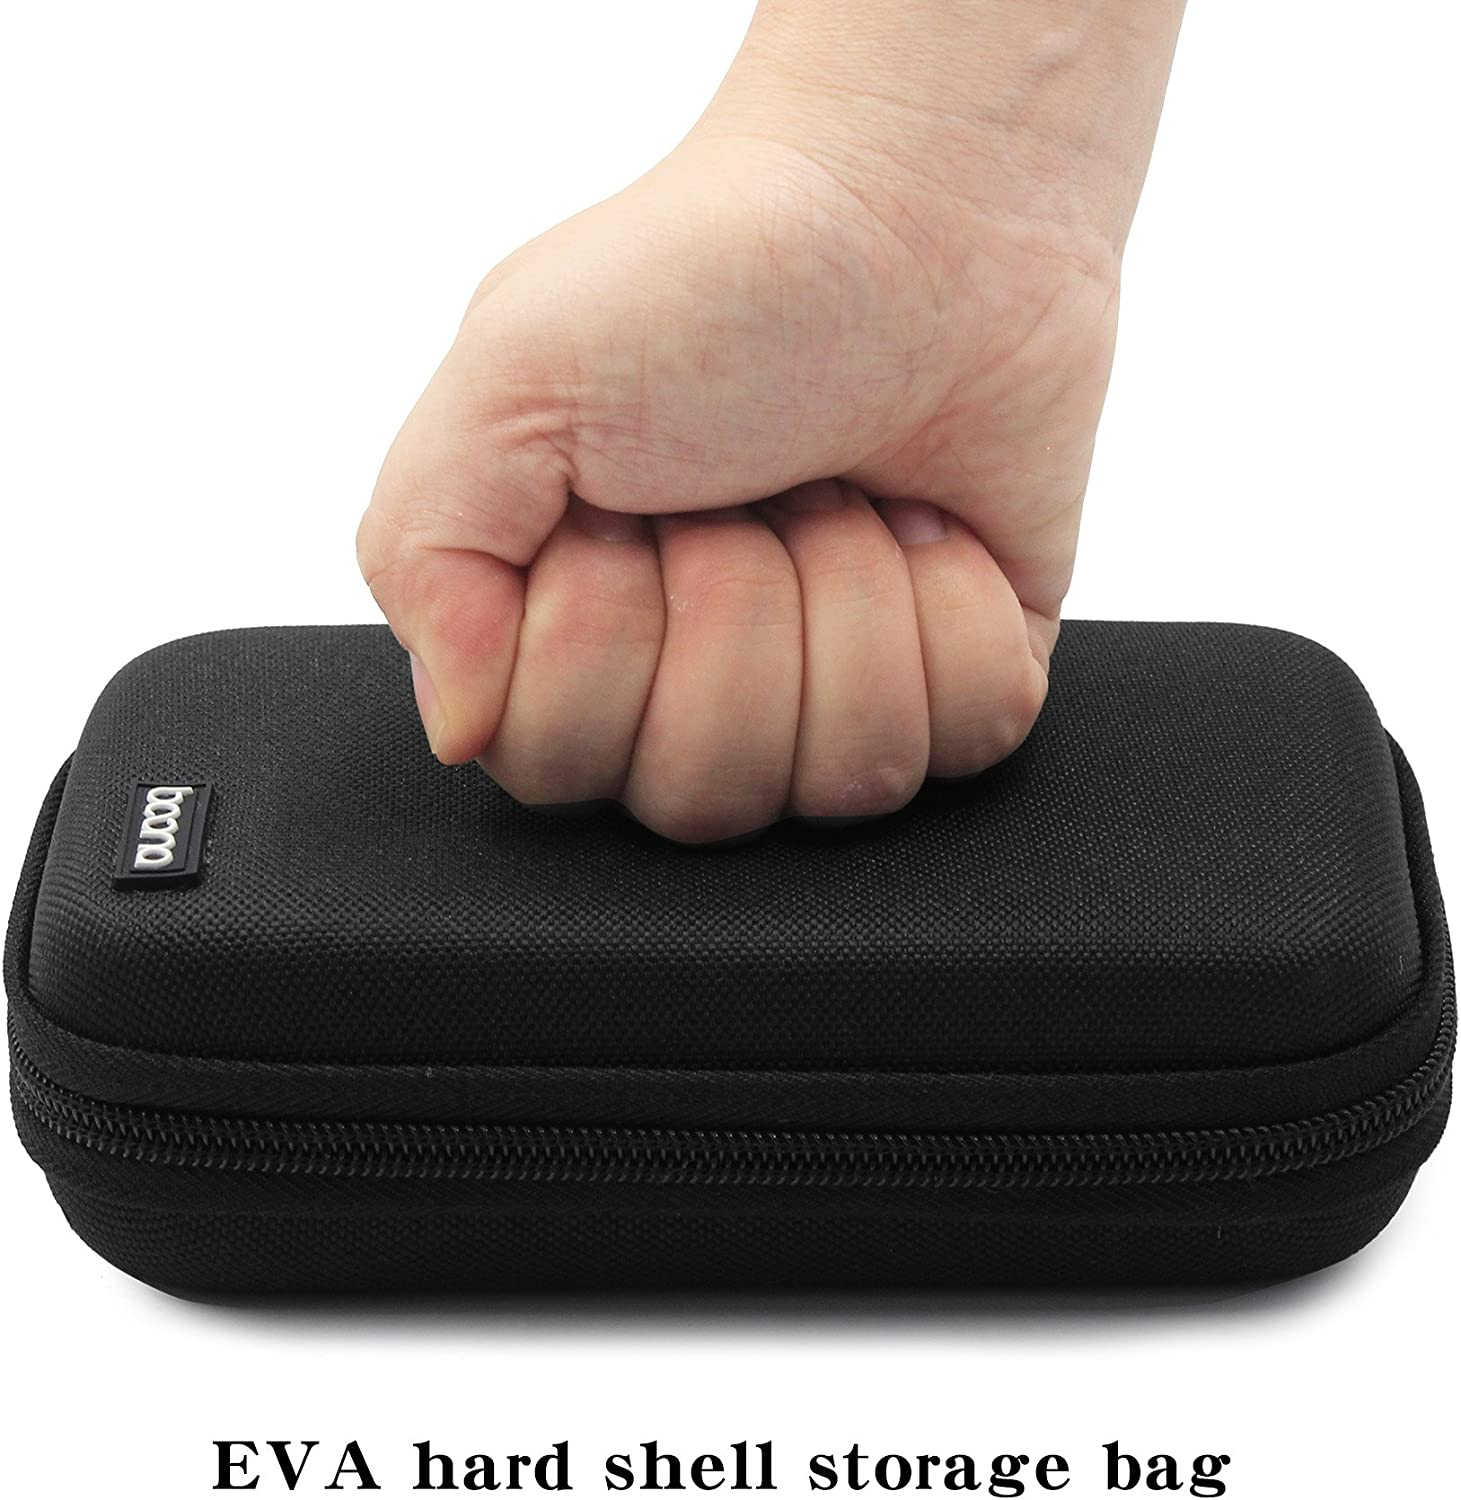 BOONA Double Layer Black Shockproof Hard Drive Carry Case for 2.5 inch WD Western Digital and USB Cable